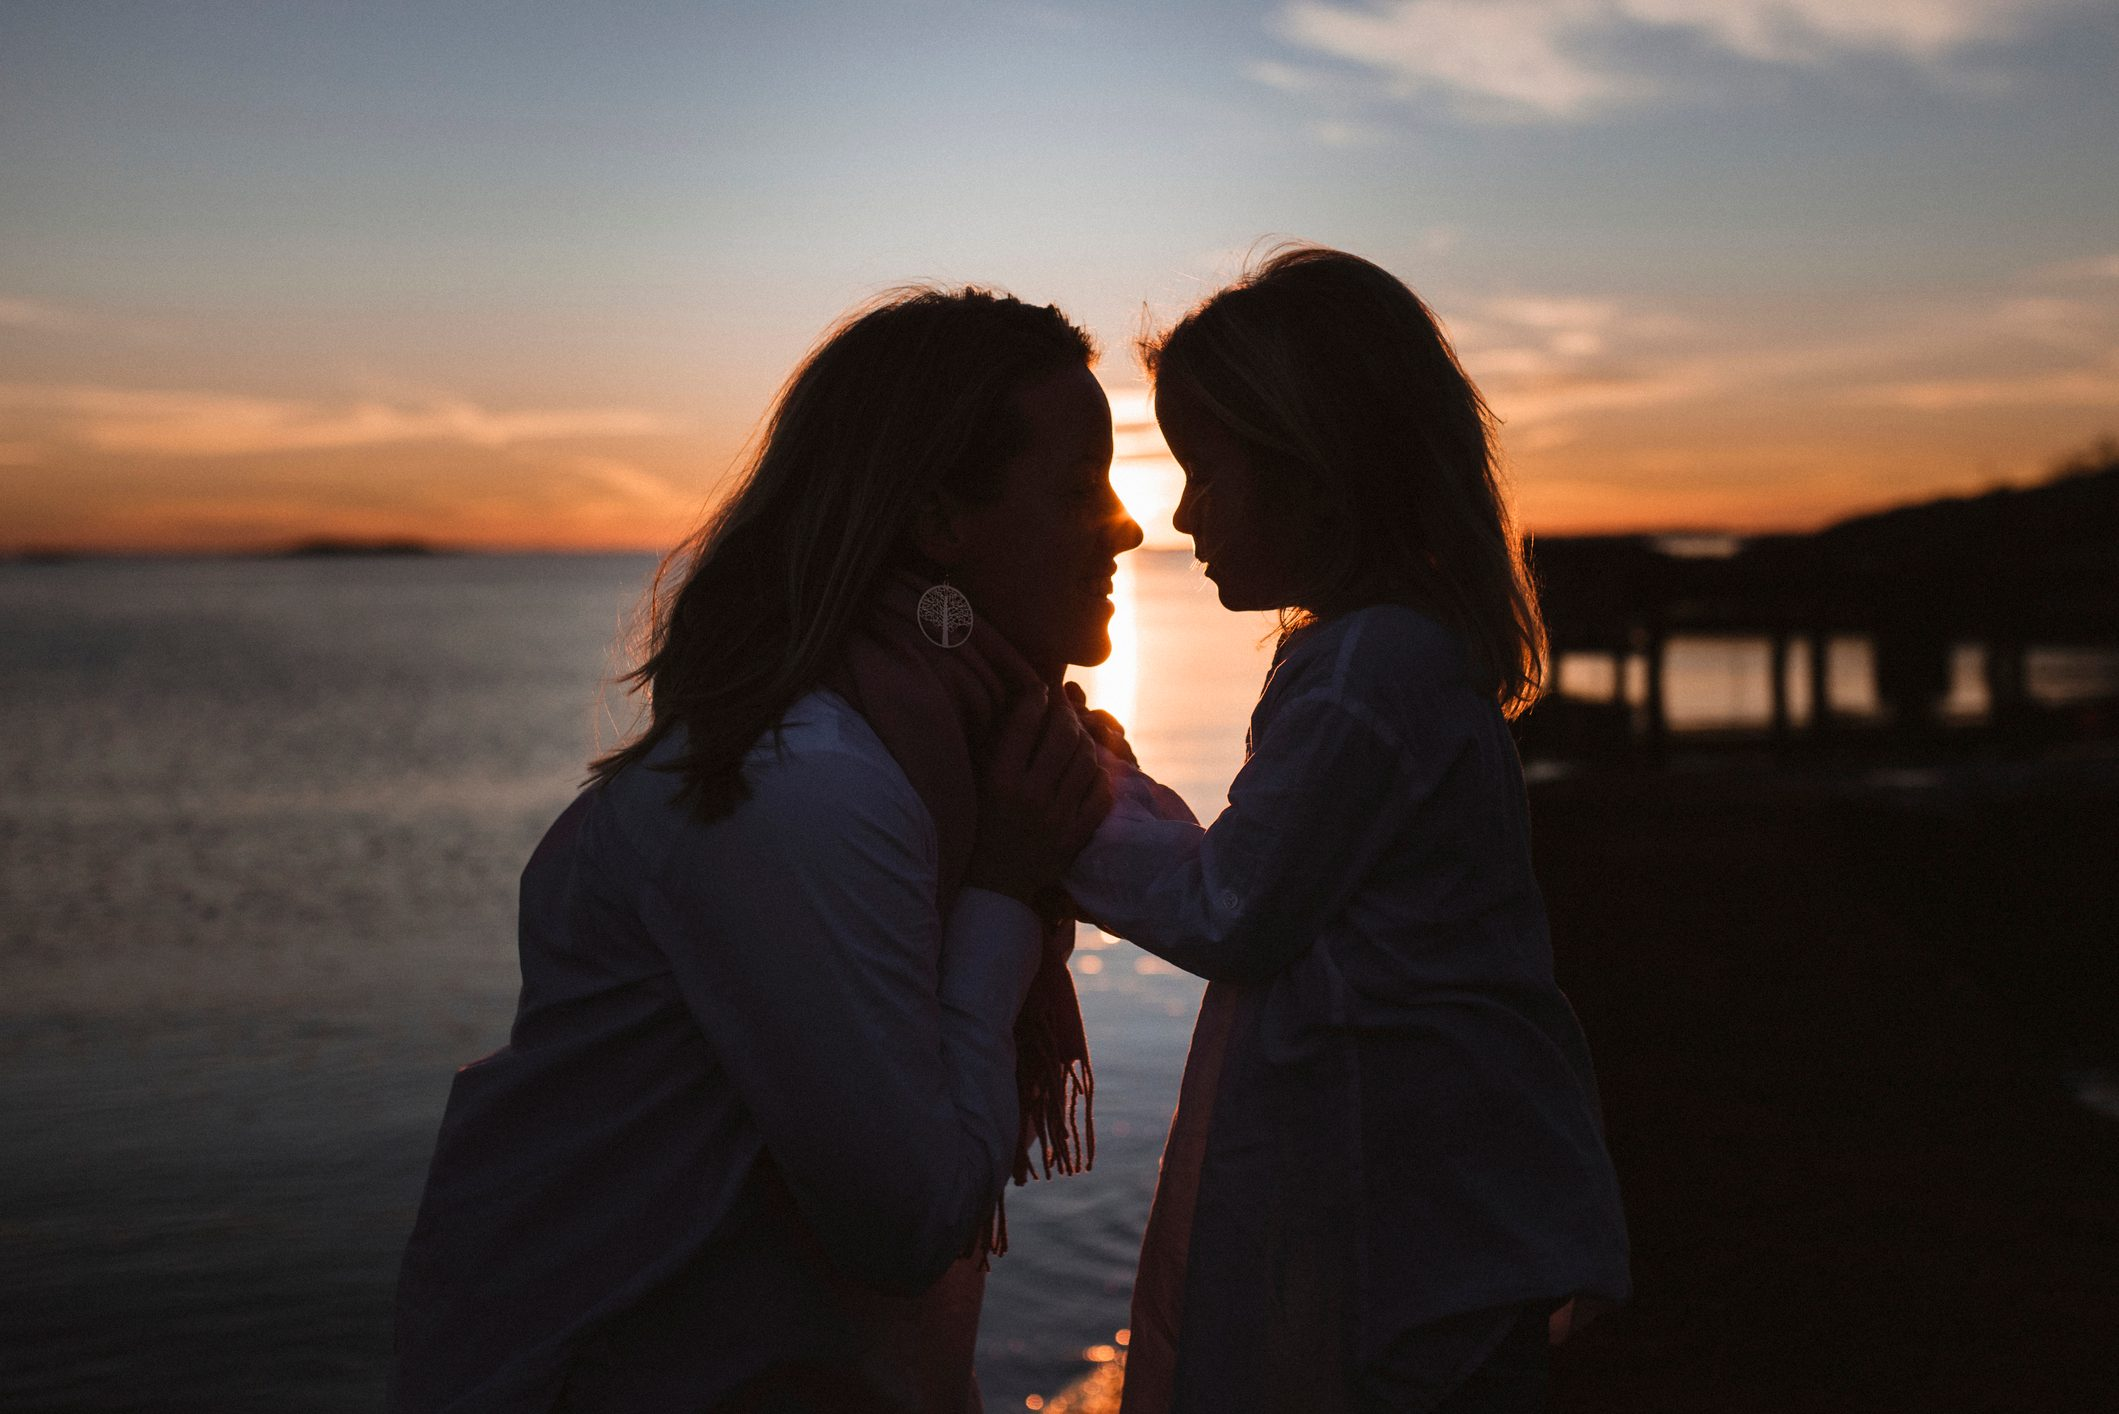 mother and daughter looking at each other with sunset in background